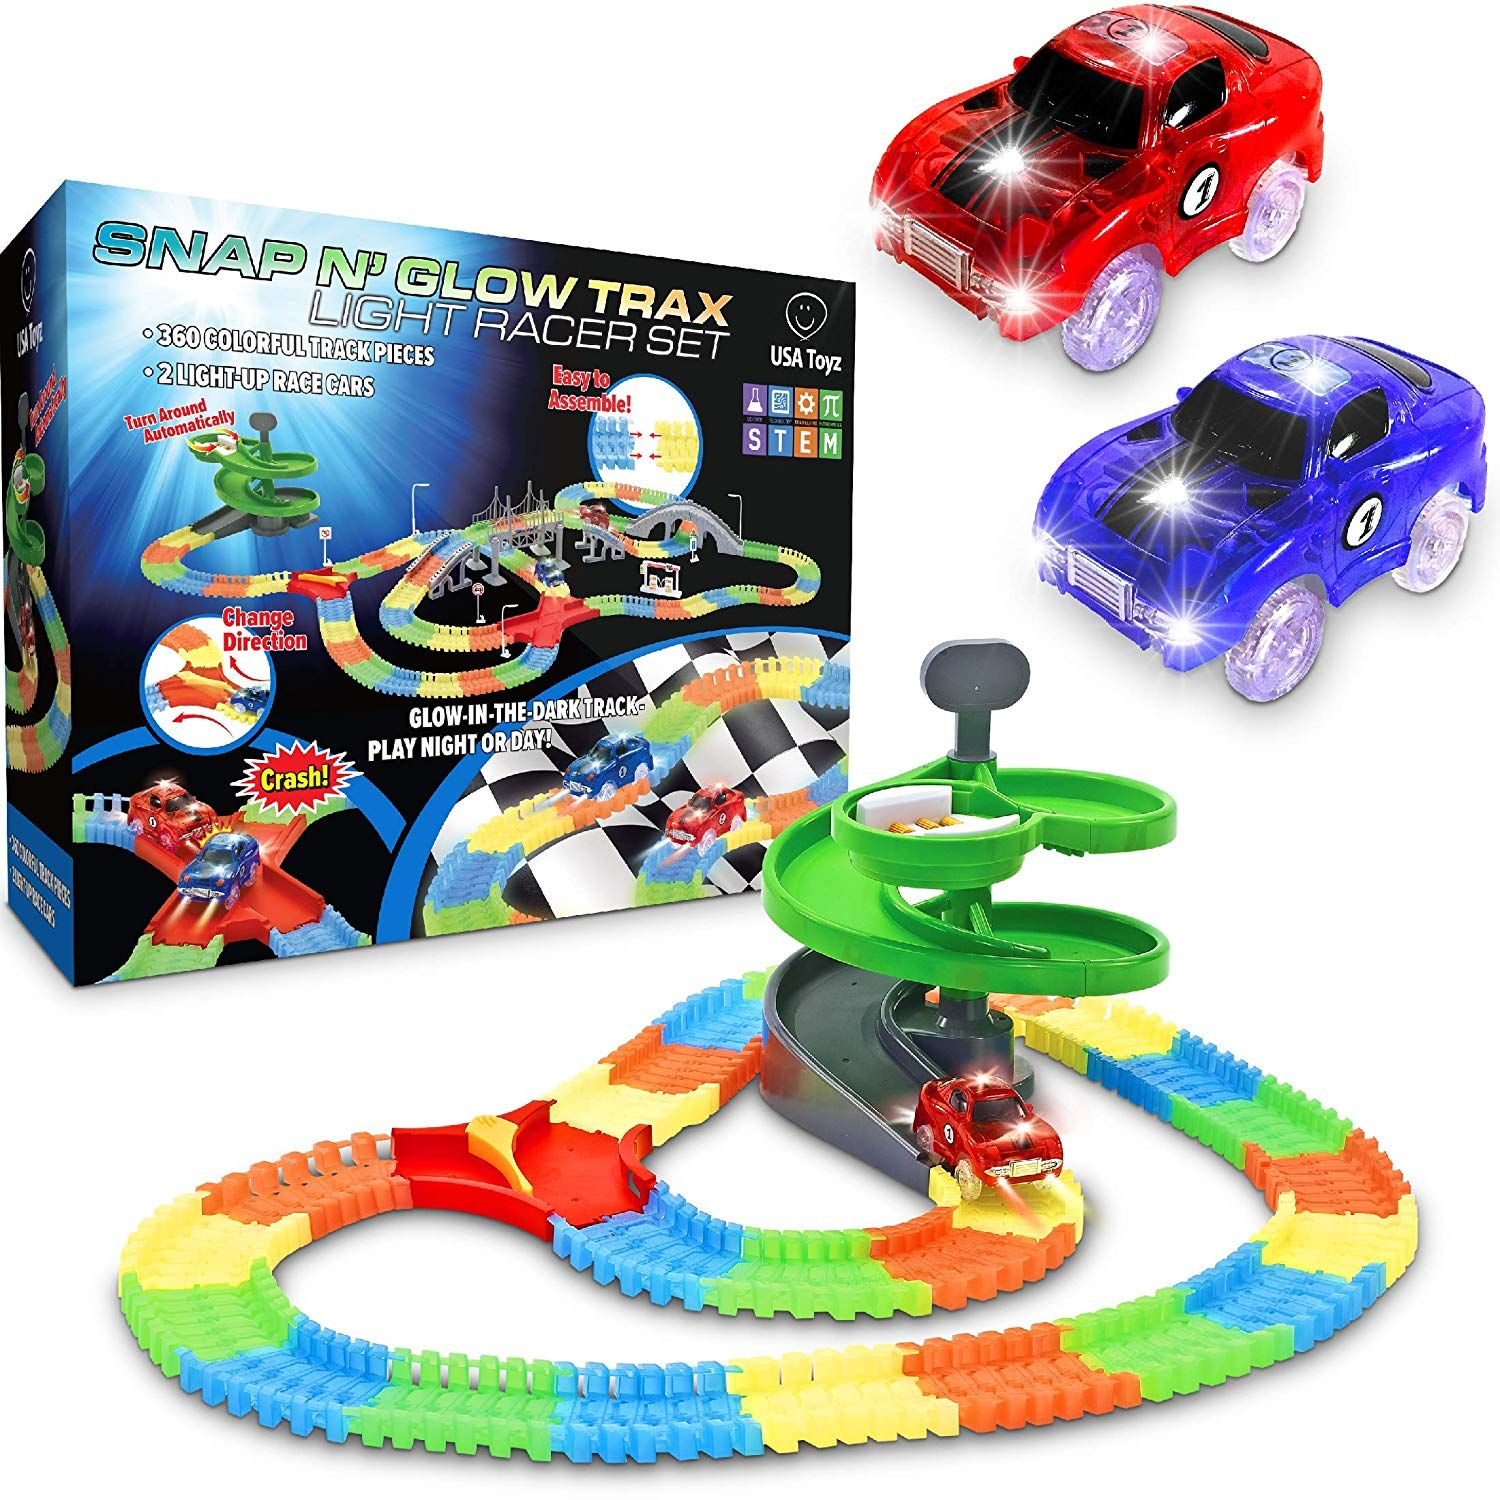 Glow Race Tracks For Boys 360pk Light Up Snap N Glow In The Dark Magic Rainbow Race Tracks Toy Car Race Track Track Toy